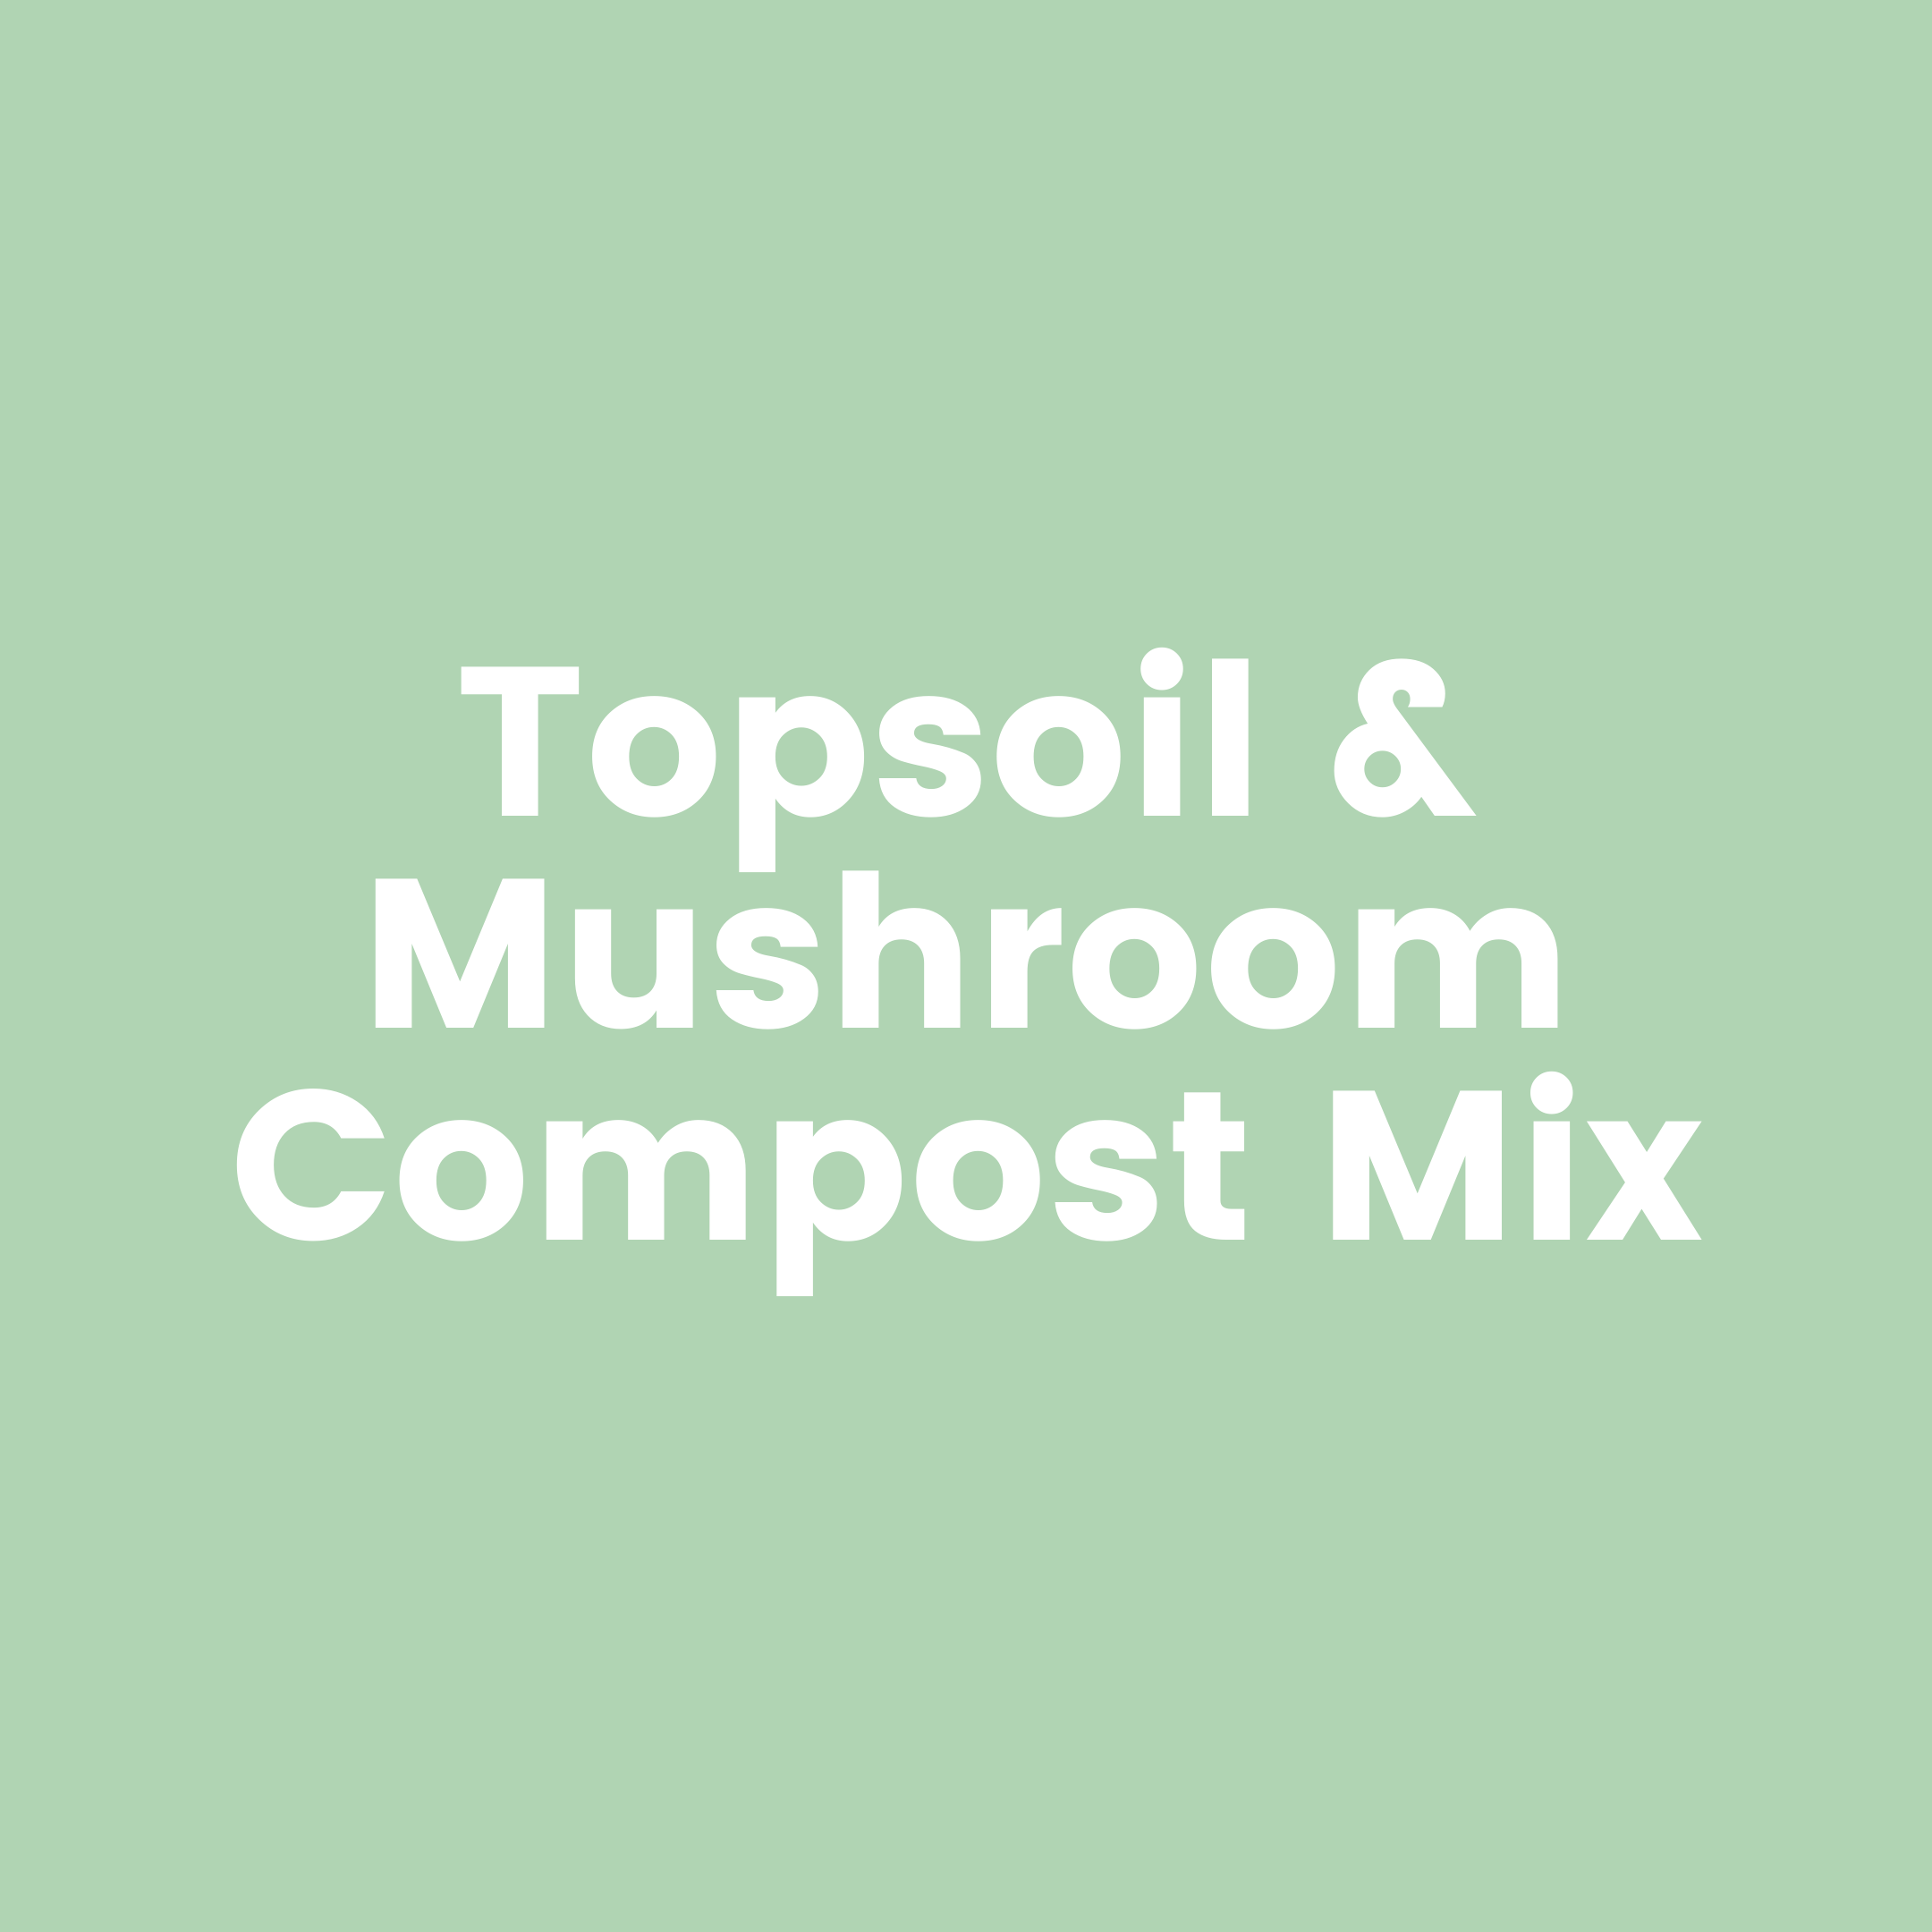 Topsoil and Mushroom Compost Mix